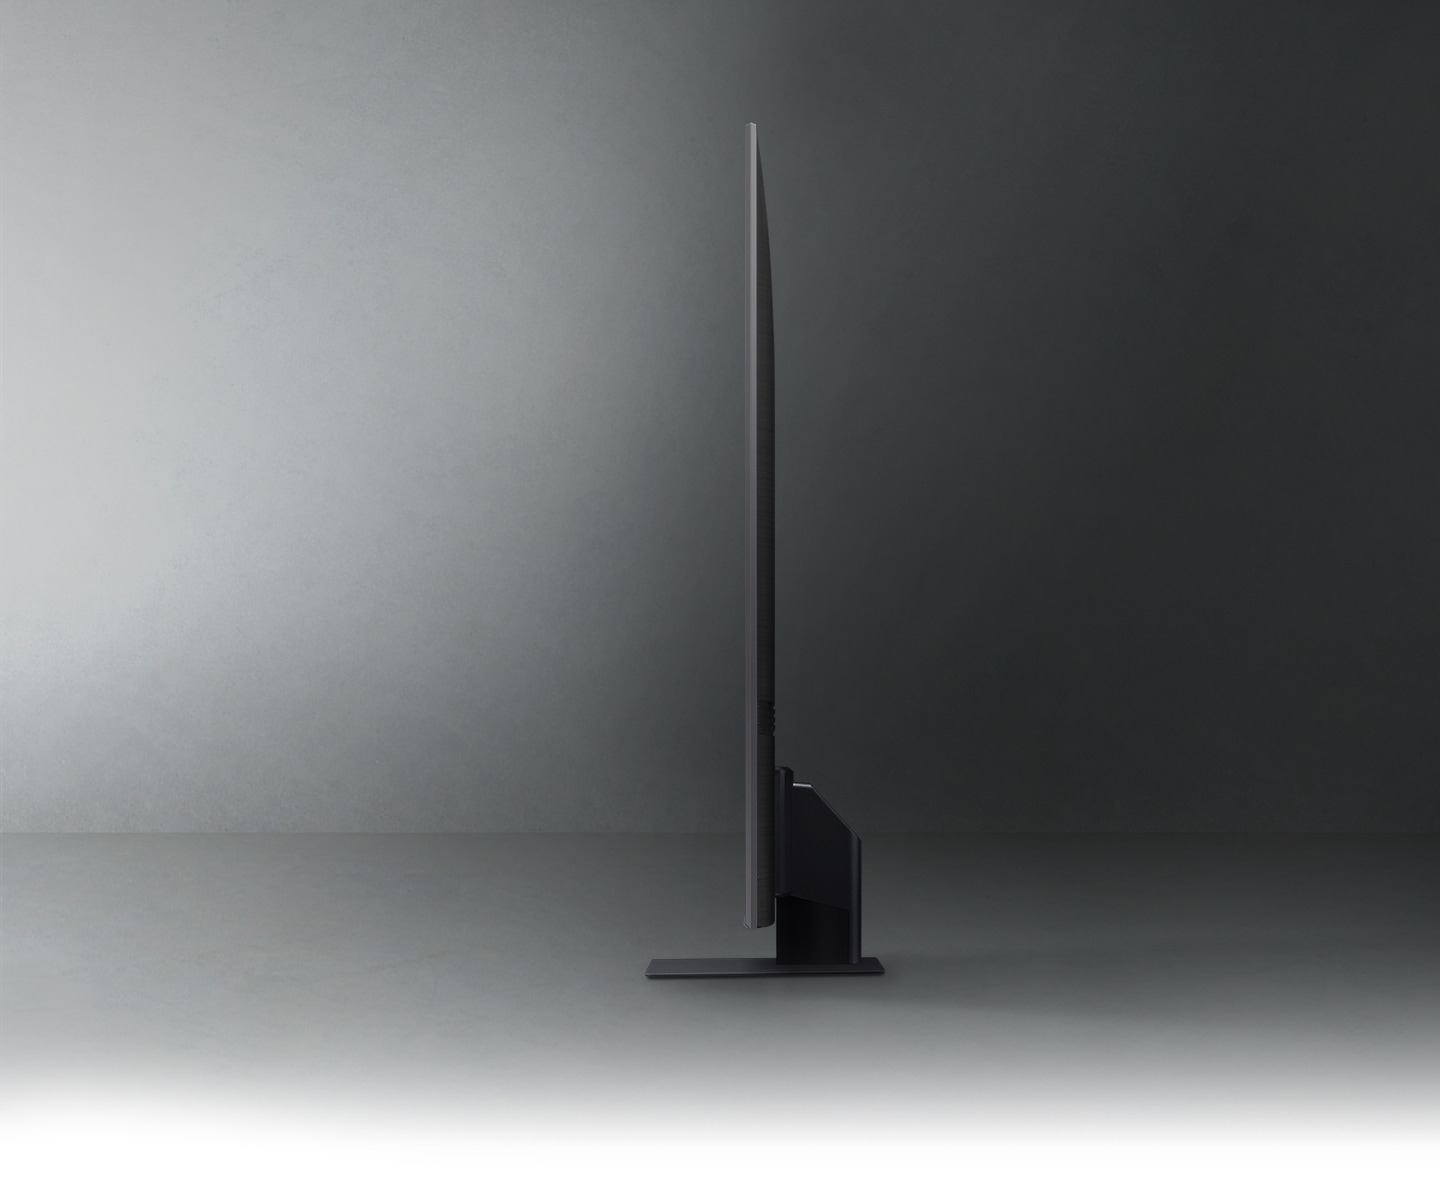 The profile view of the QLED TV shows the ultra-slim AirSlim design.